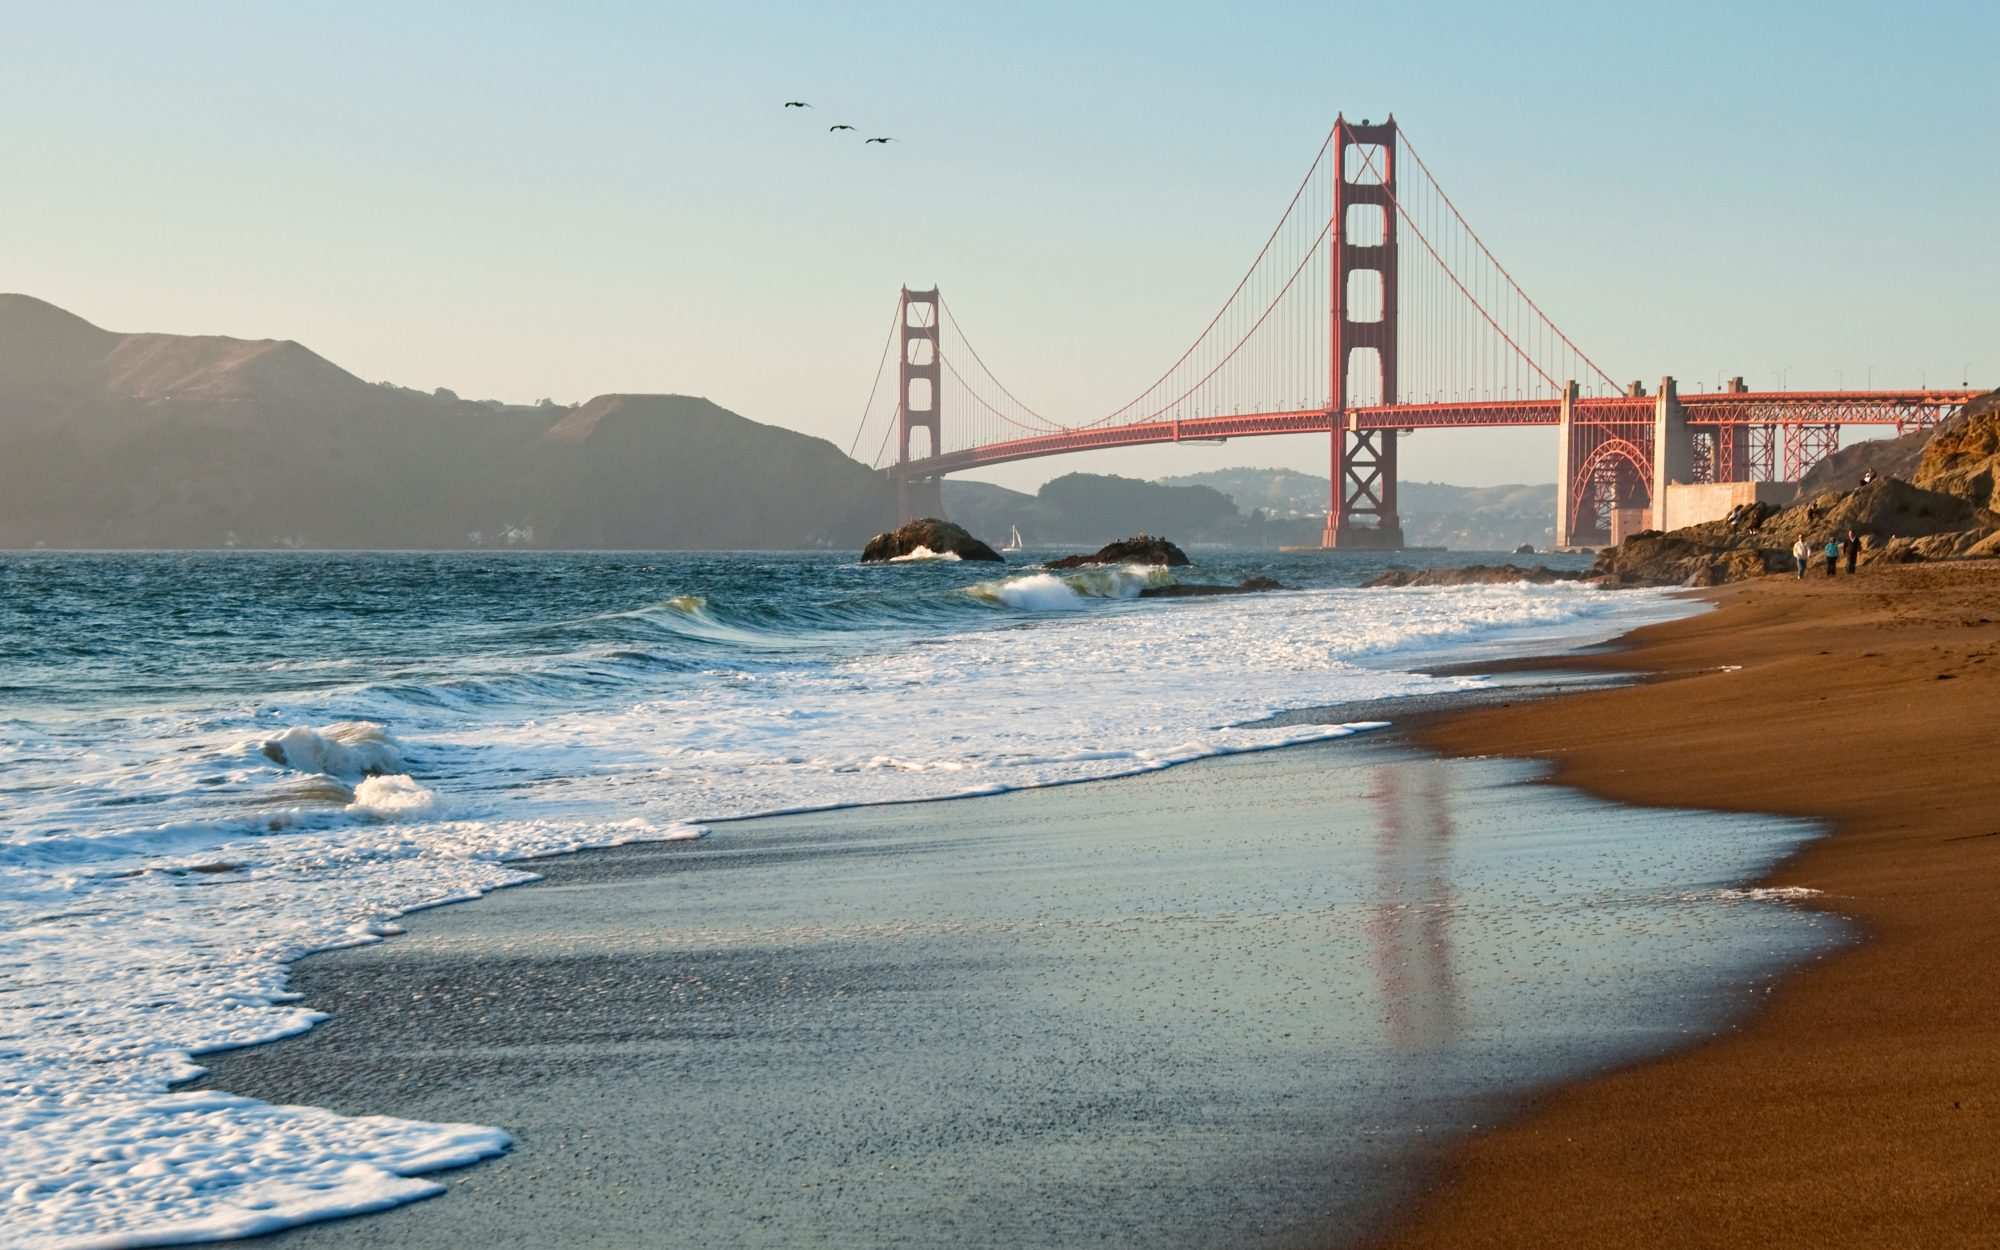 America's Most Romantic Cities: No. 3 San Francisco